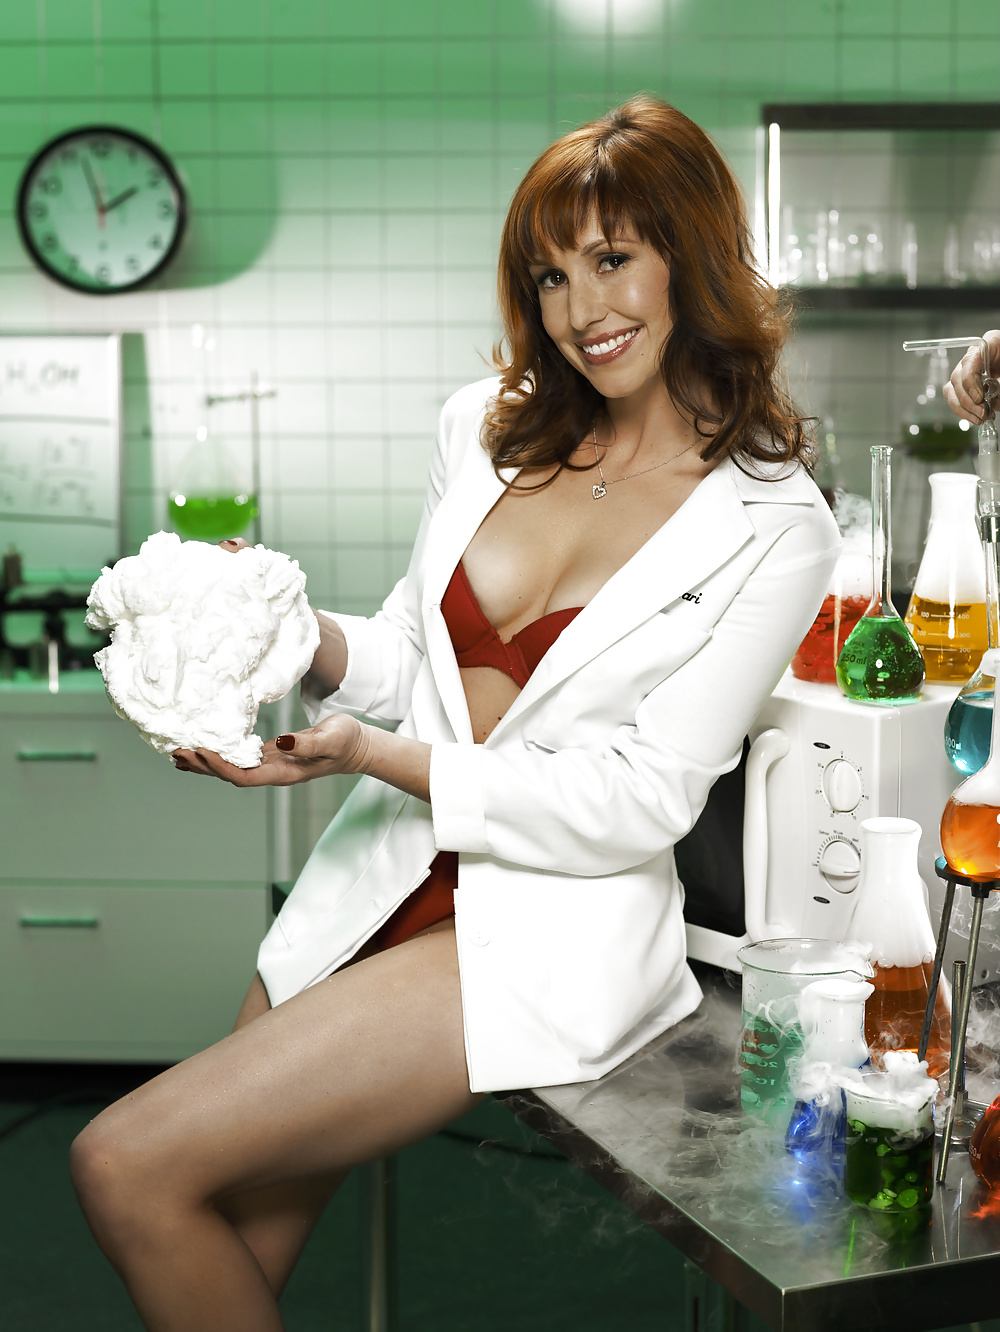 tori-from-mythbusters-naked-creampie-indiana